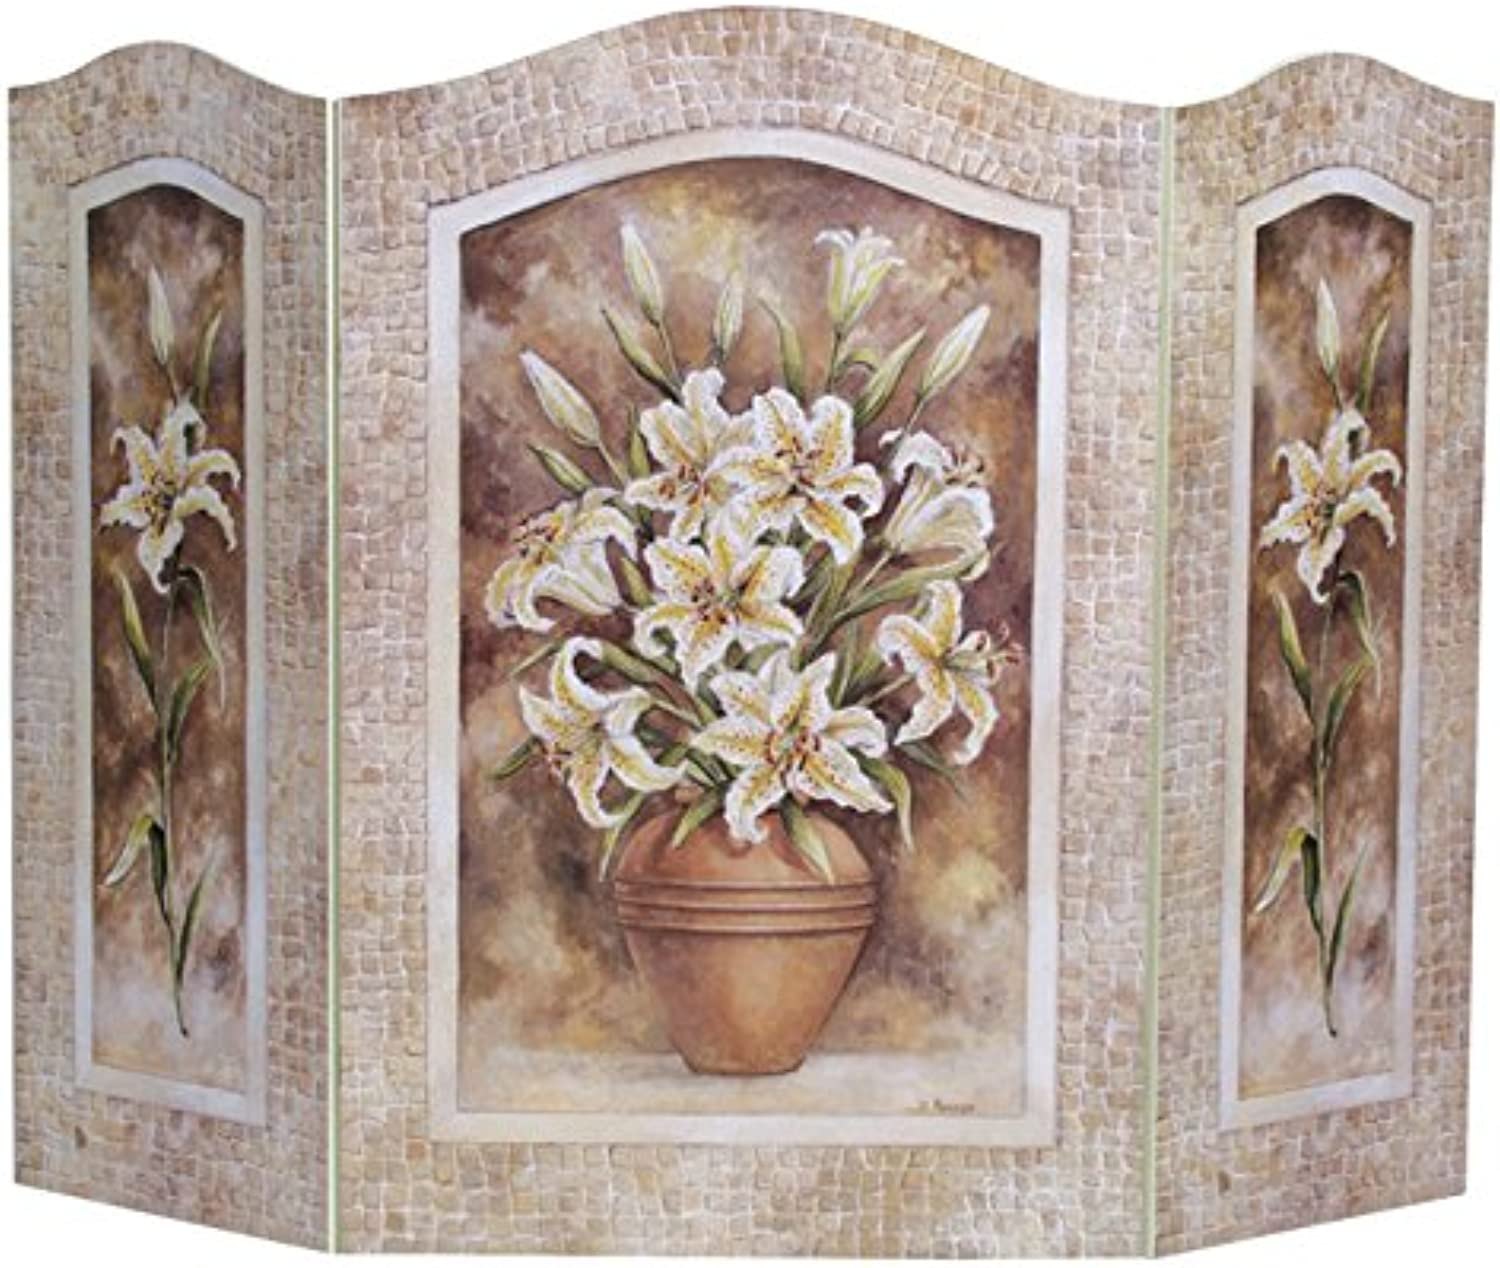 The Stupell Home Decor Collection 3 Panel Decorative Fireplace Screen, Lily Flower, 43 by 31 by 0.5-Inch